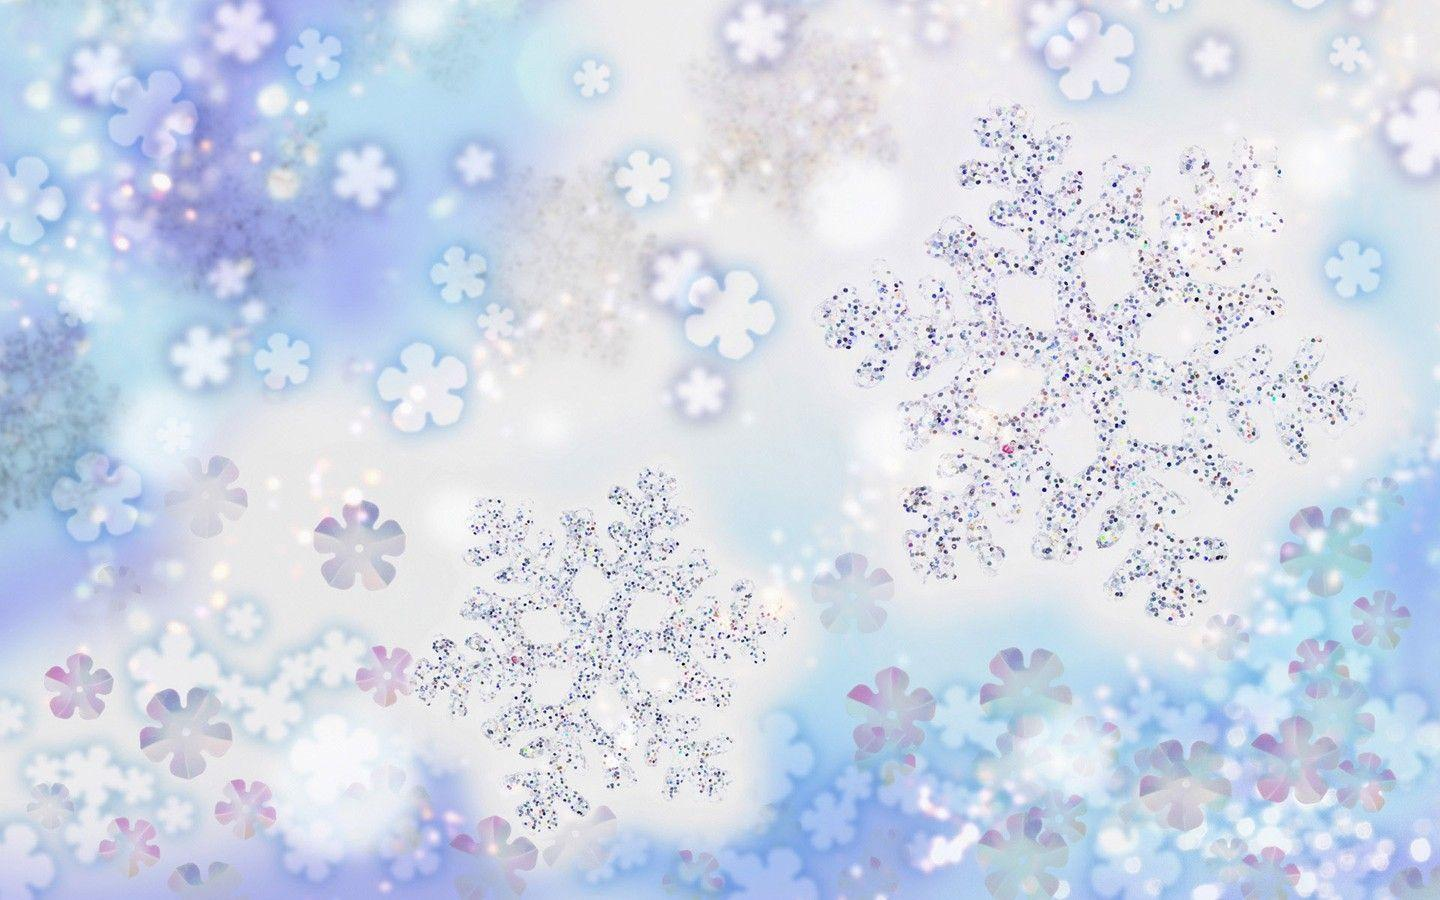 1440x900 Winter Christmas Wallpapers for your Desktop, iPhone Backgrounds